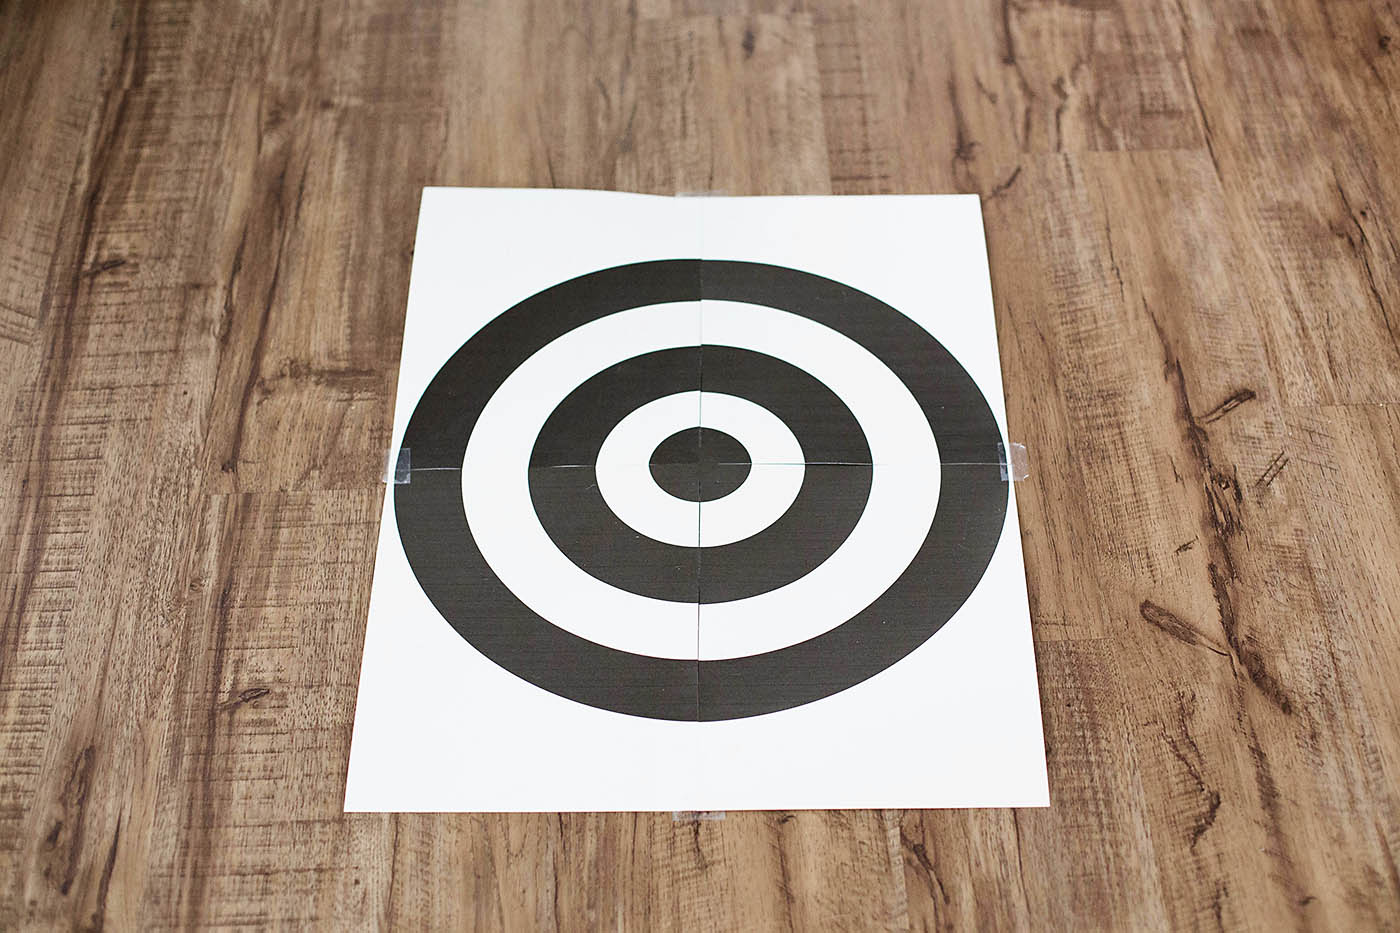 Easy toy target game - perfect summer fun idea!